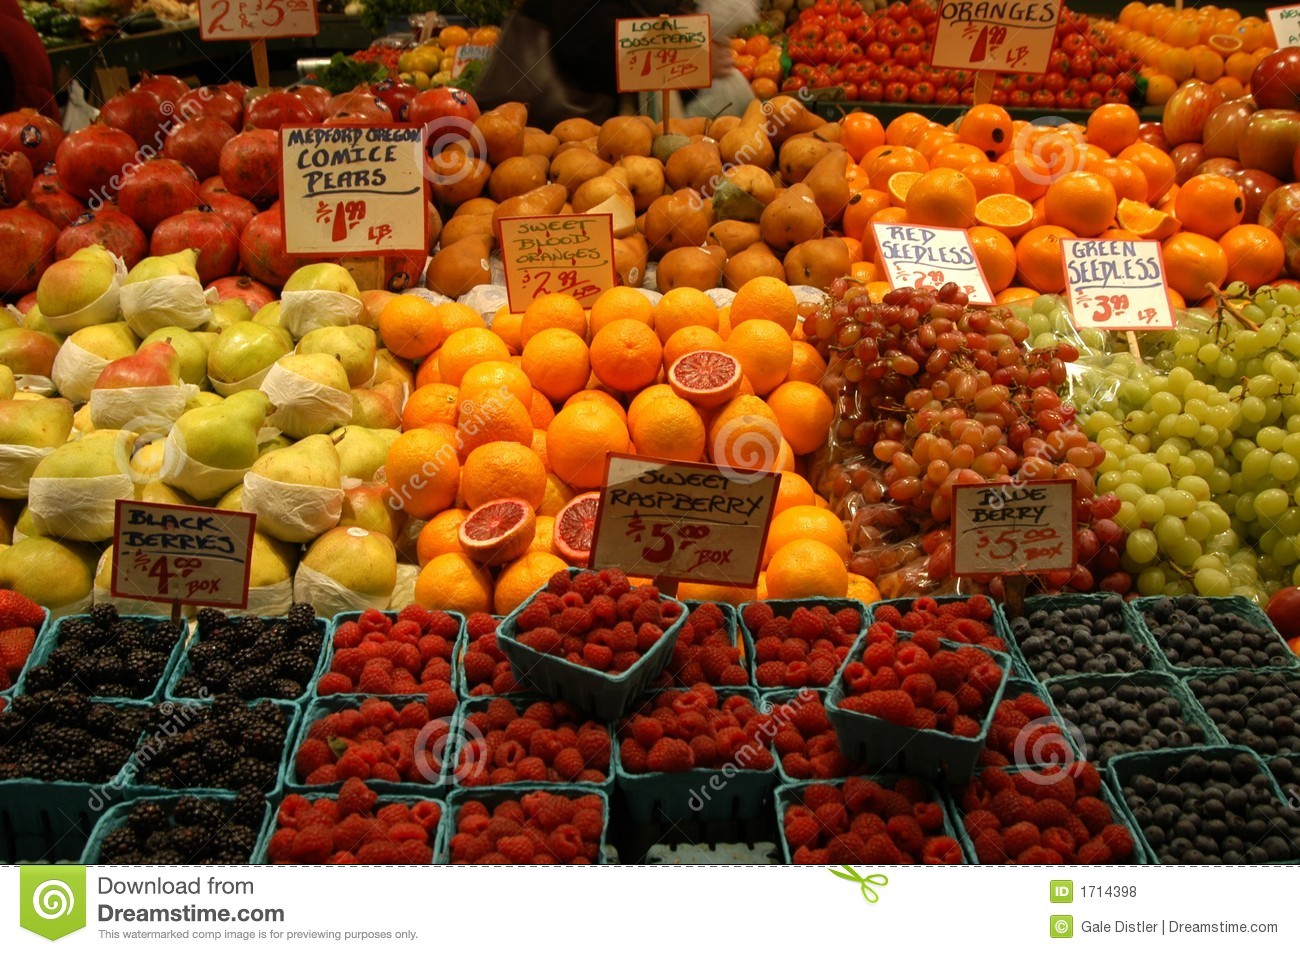 Fruit market with oranges, apples, pears, berries and grapes.